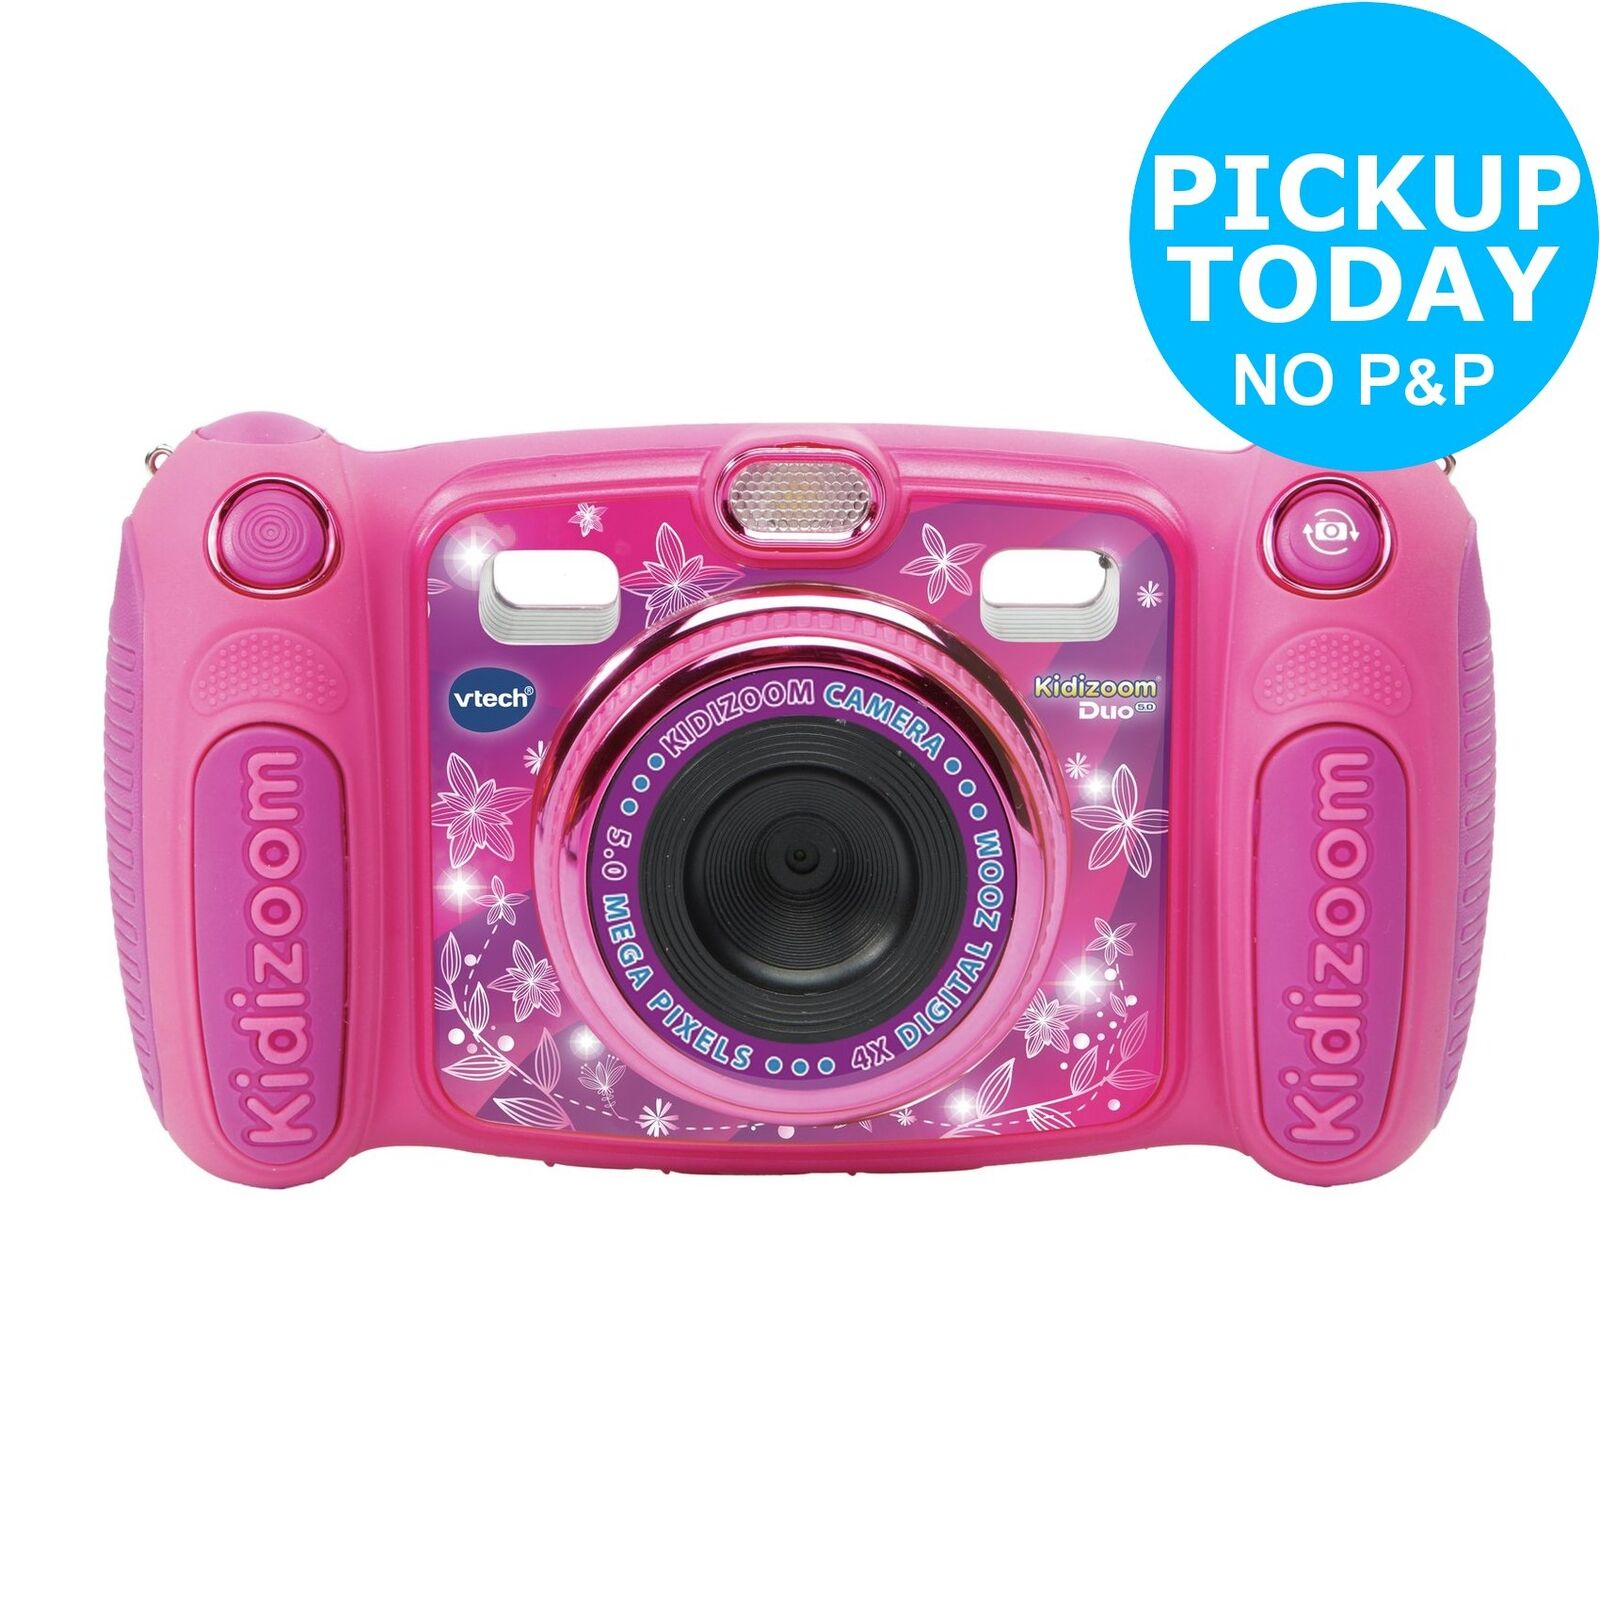 VTech Kidizoom 2.4 Inch LCD 4x Digital Zoom 5MP Camera - Pink - 3+ Years